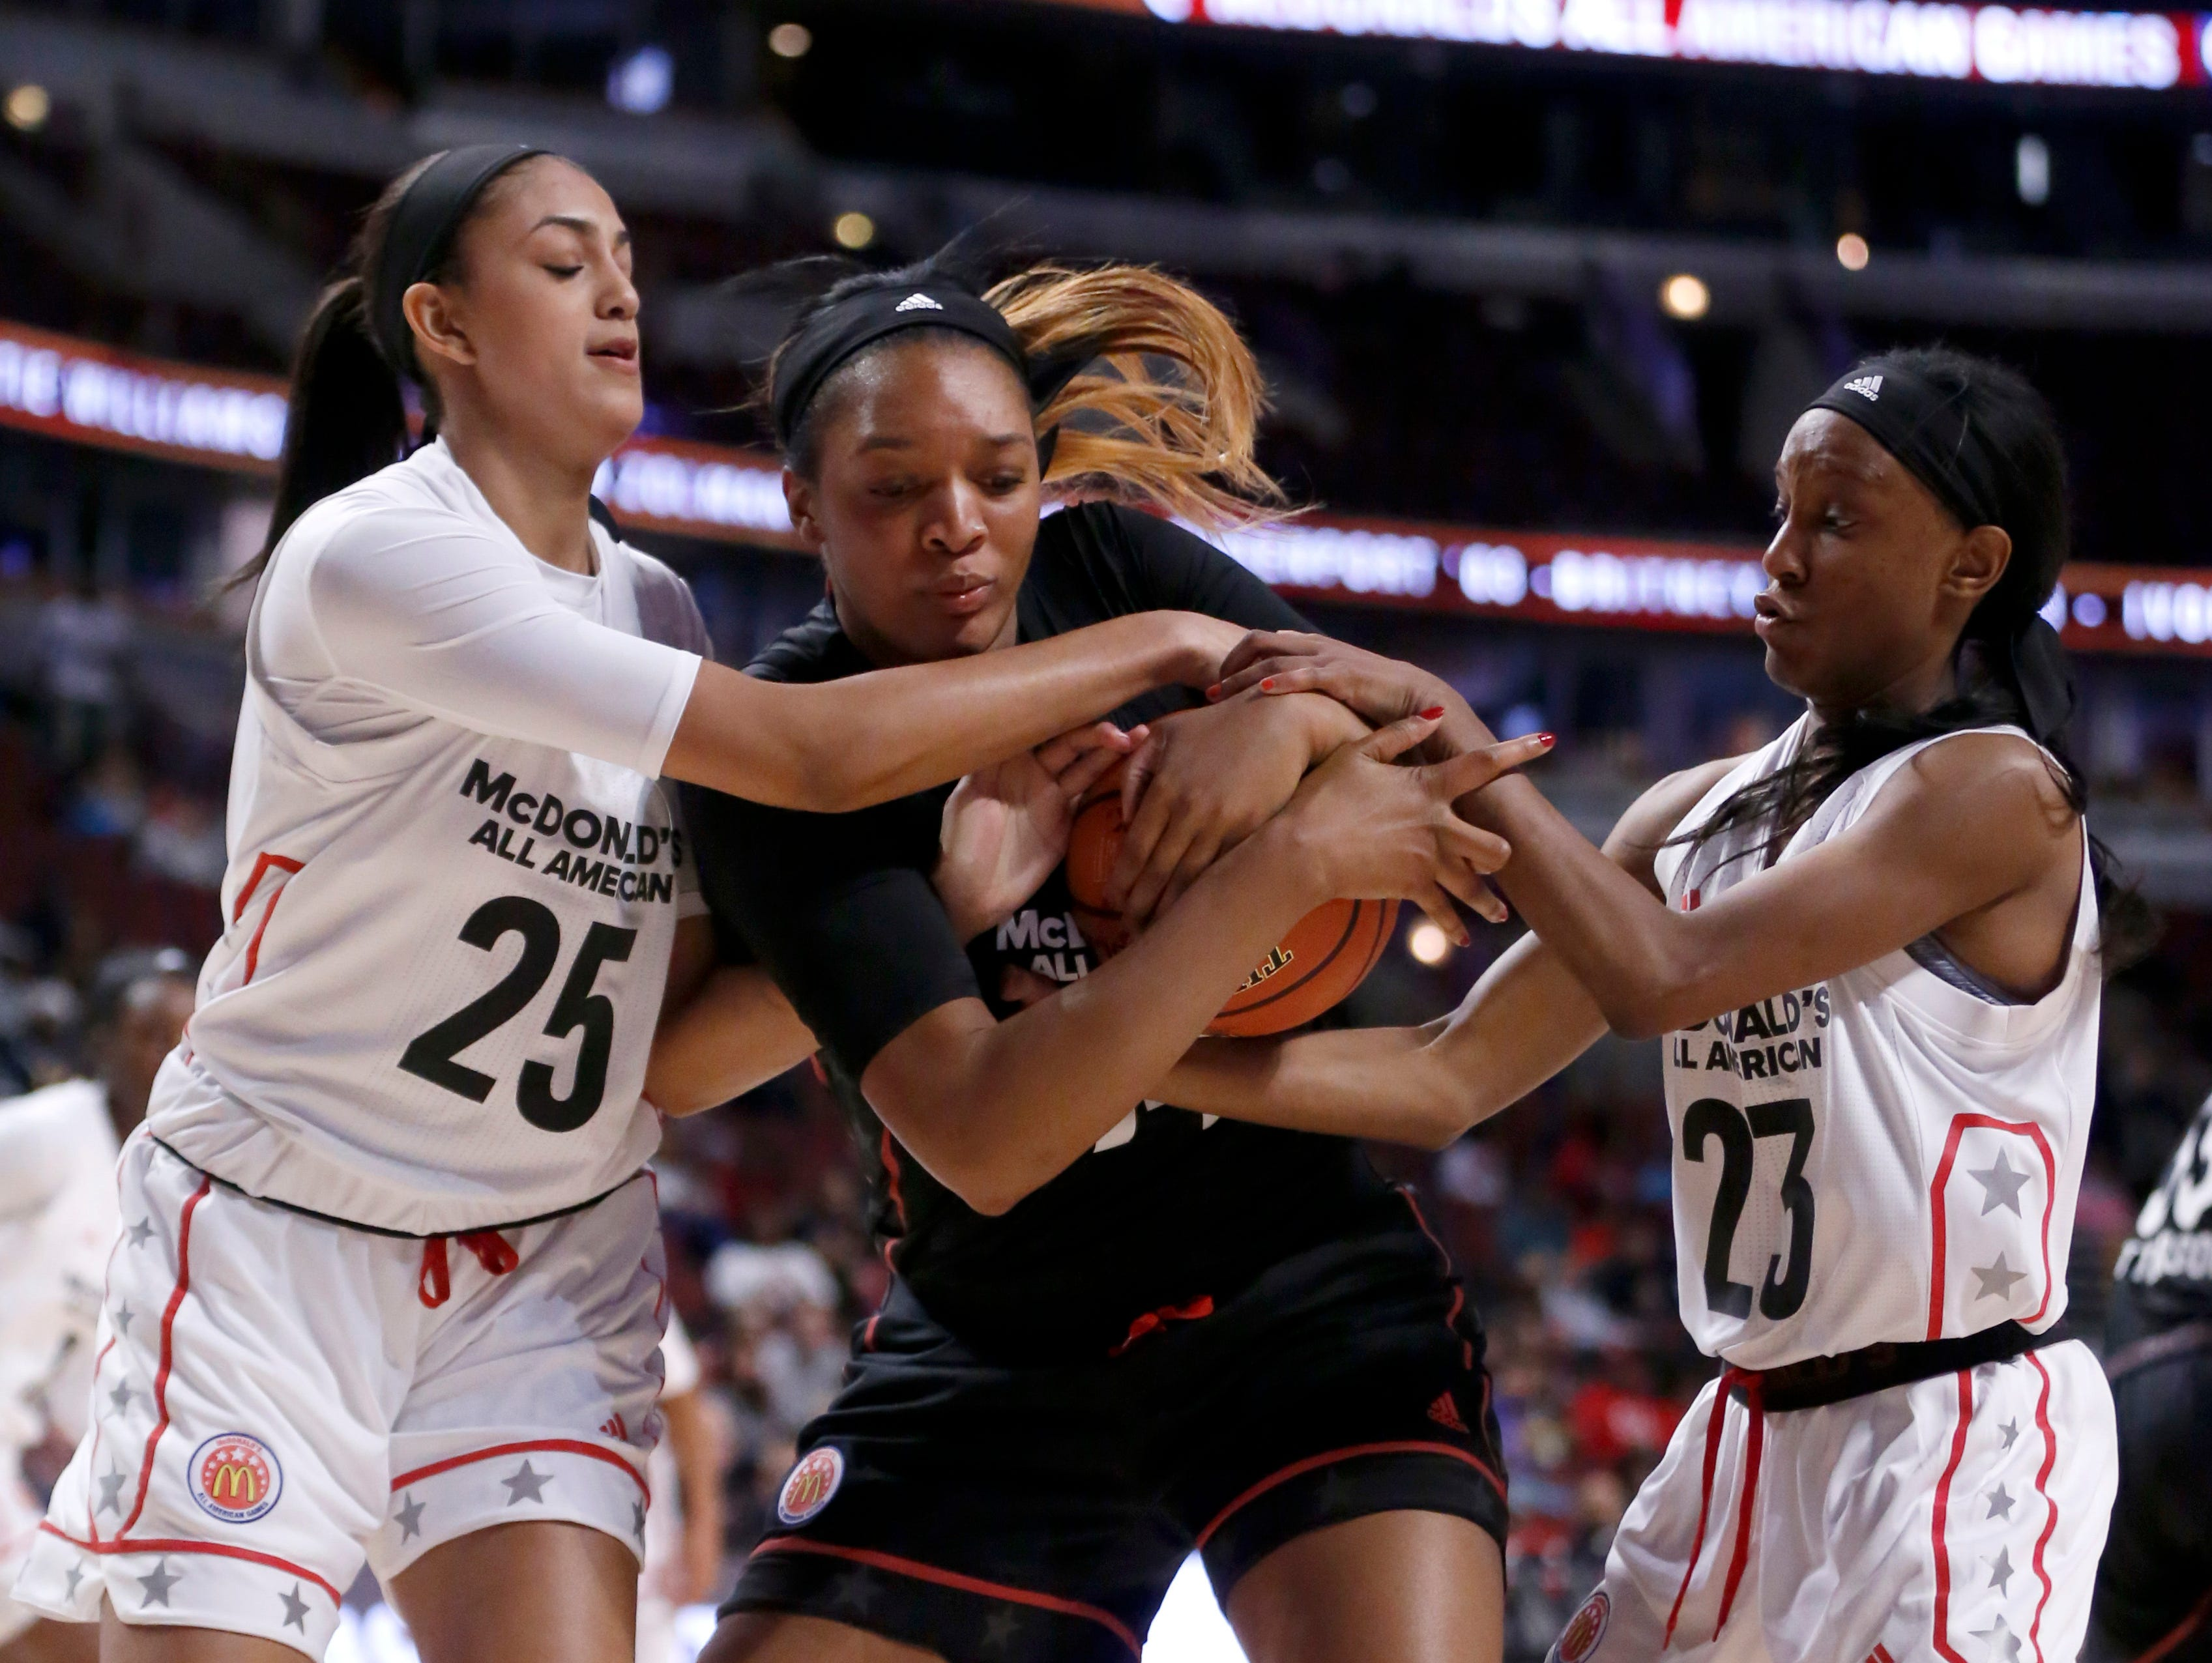 The West's Jade Williams (25) and Kiana Williams (23) battle the East's Kasi Kushkituah, a Tennessee signee, for the ball during the first half of the McDonald's All-American girls high school basketball game Wednesday, March 29, 2017, in Chicago.